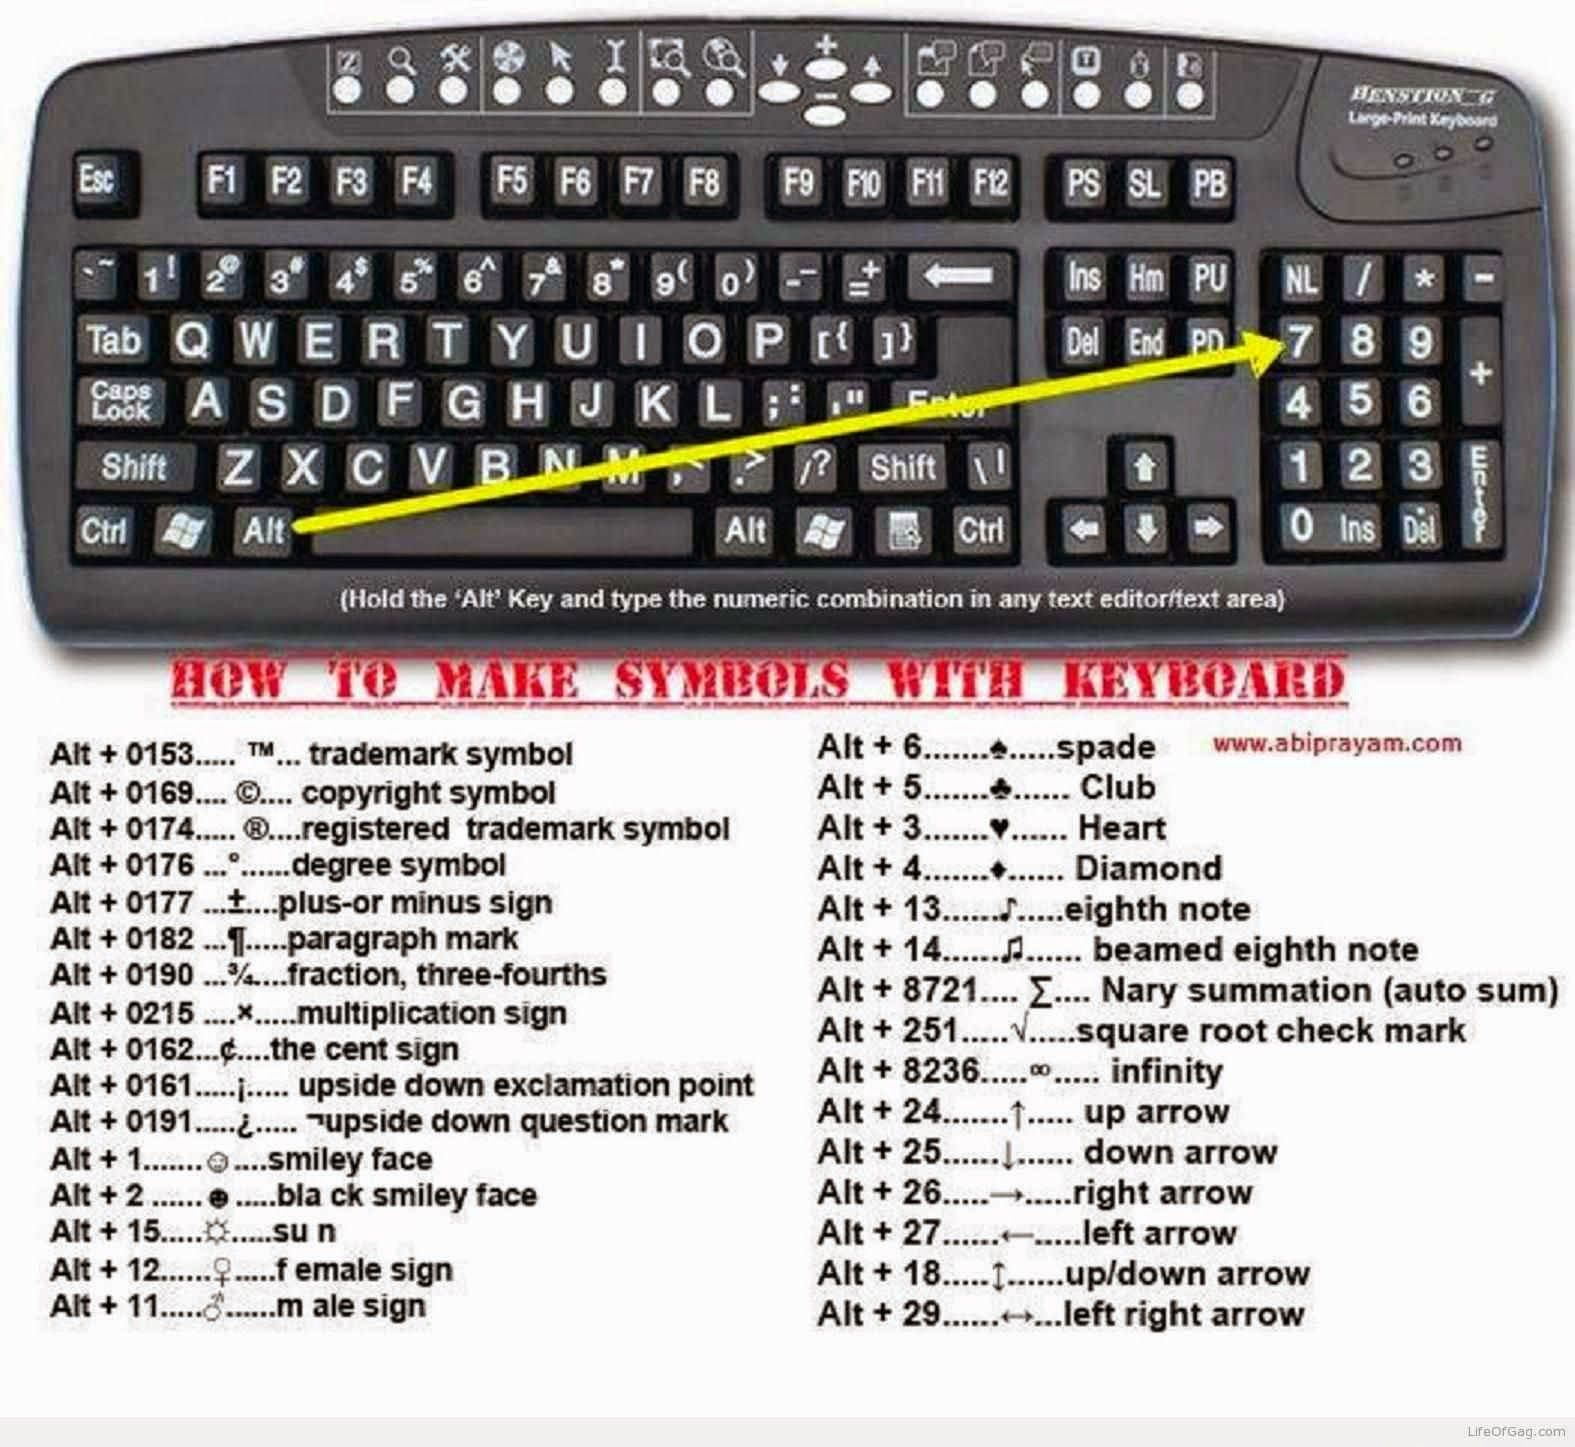 How to make symbols with keyboard electrical engineering world knowing keyboard shortcuts are really handy sometimes here is a list of common shortcuts for inputting symbols which symbol buycottarizona Gallery